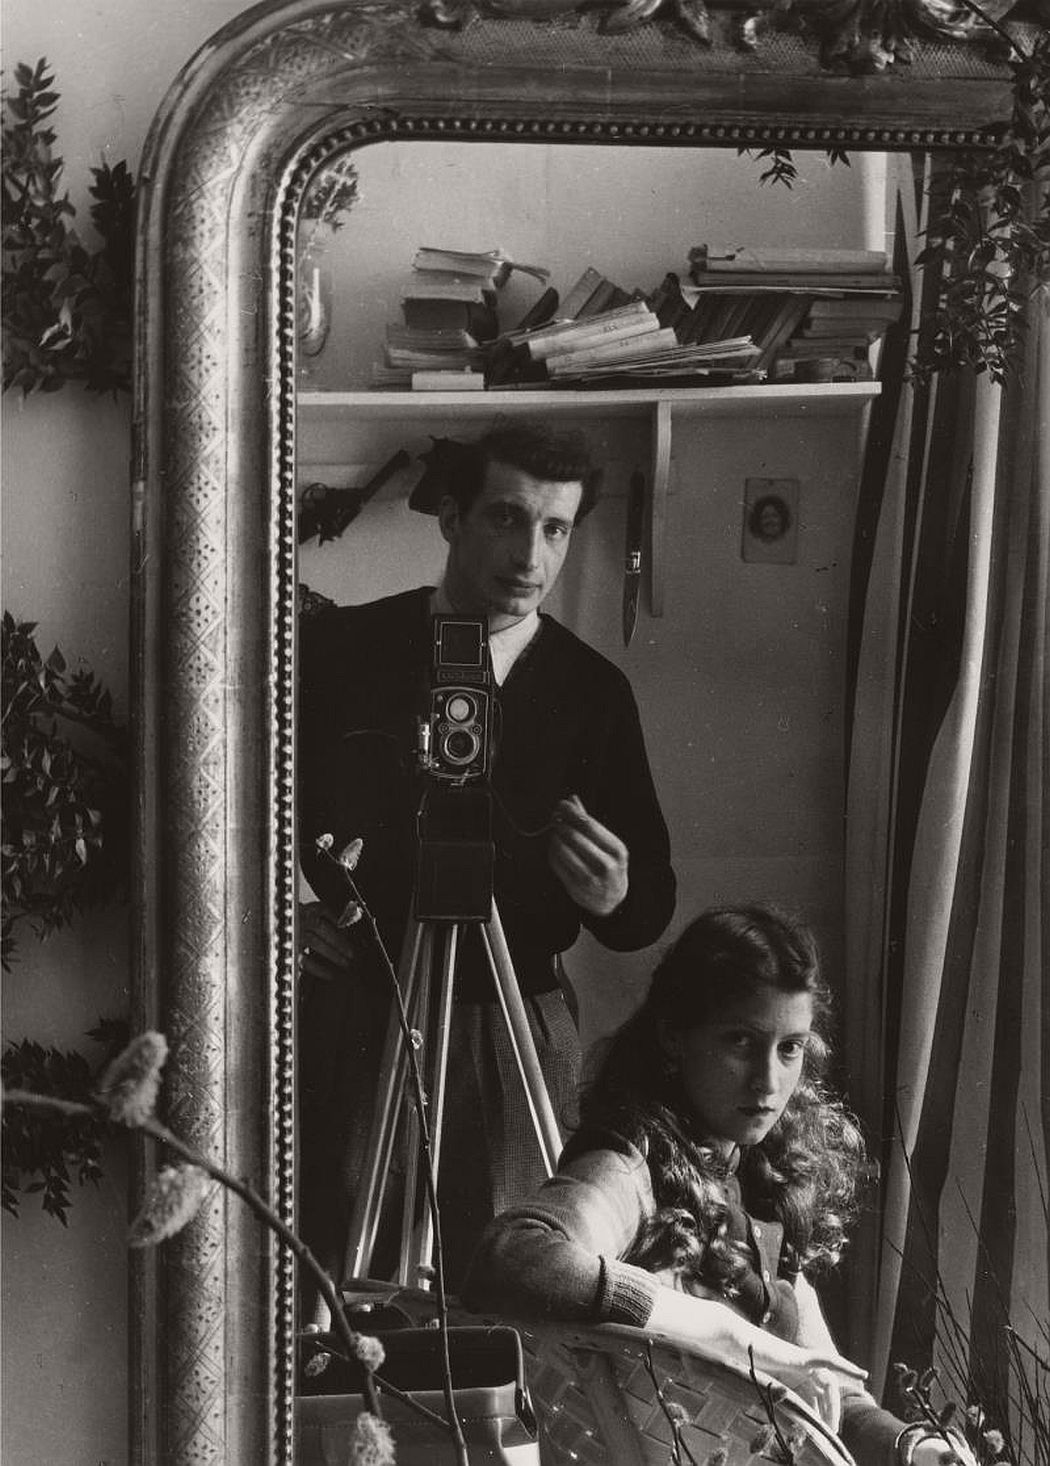 Edouard Boubat --Self-portrait in Mirror, Paris, c1951